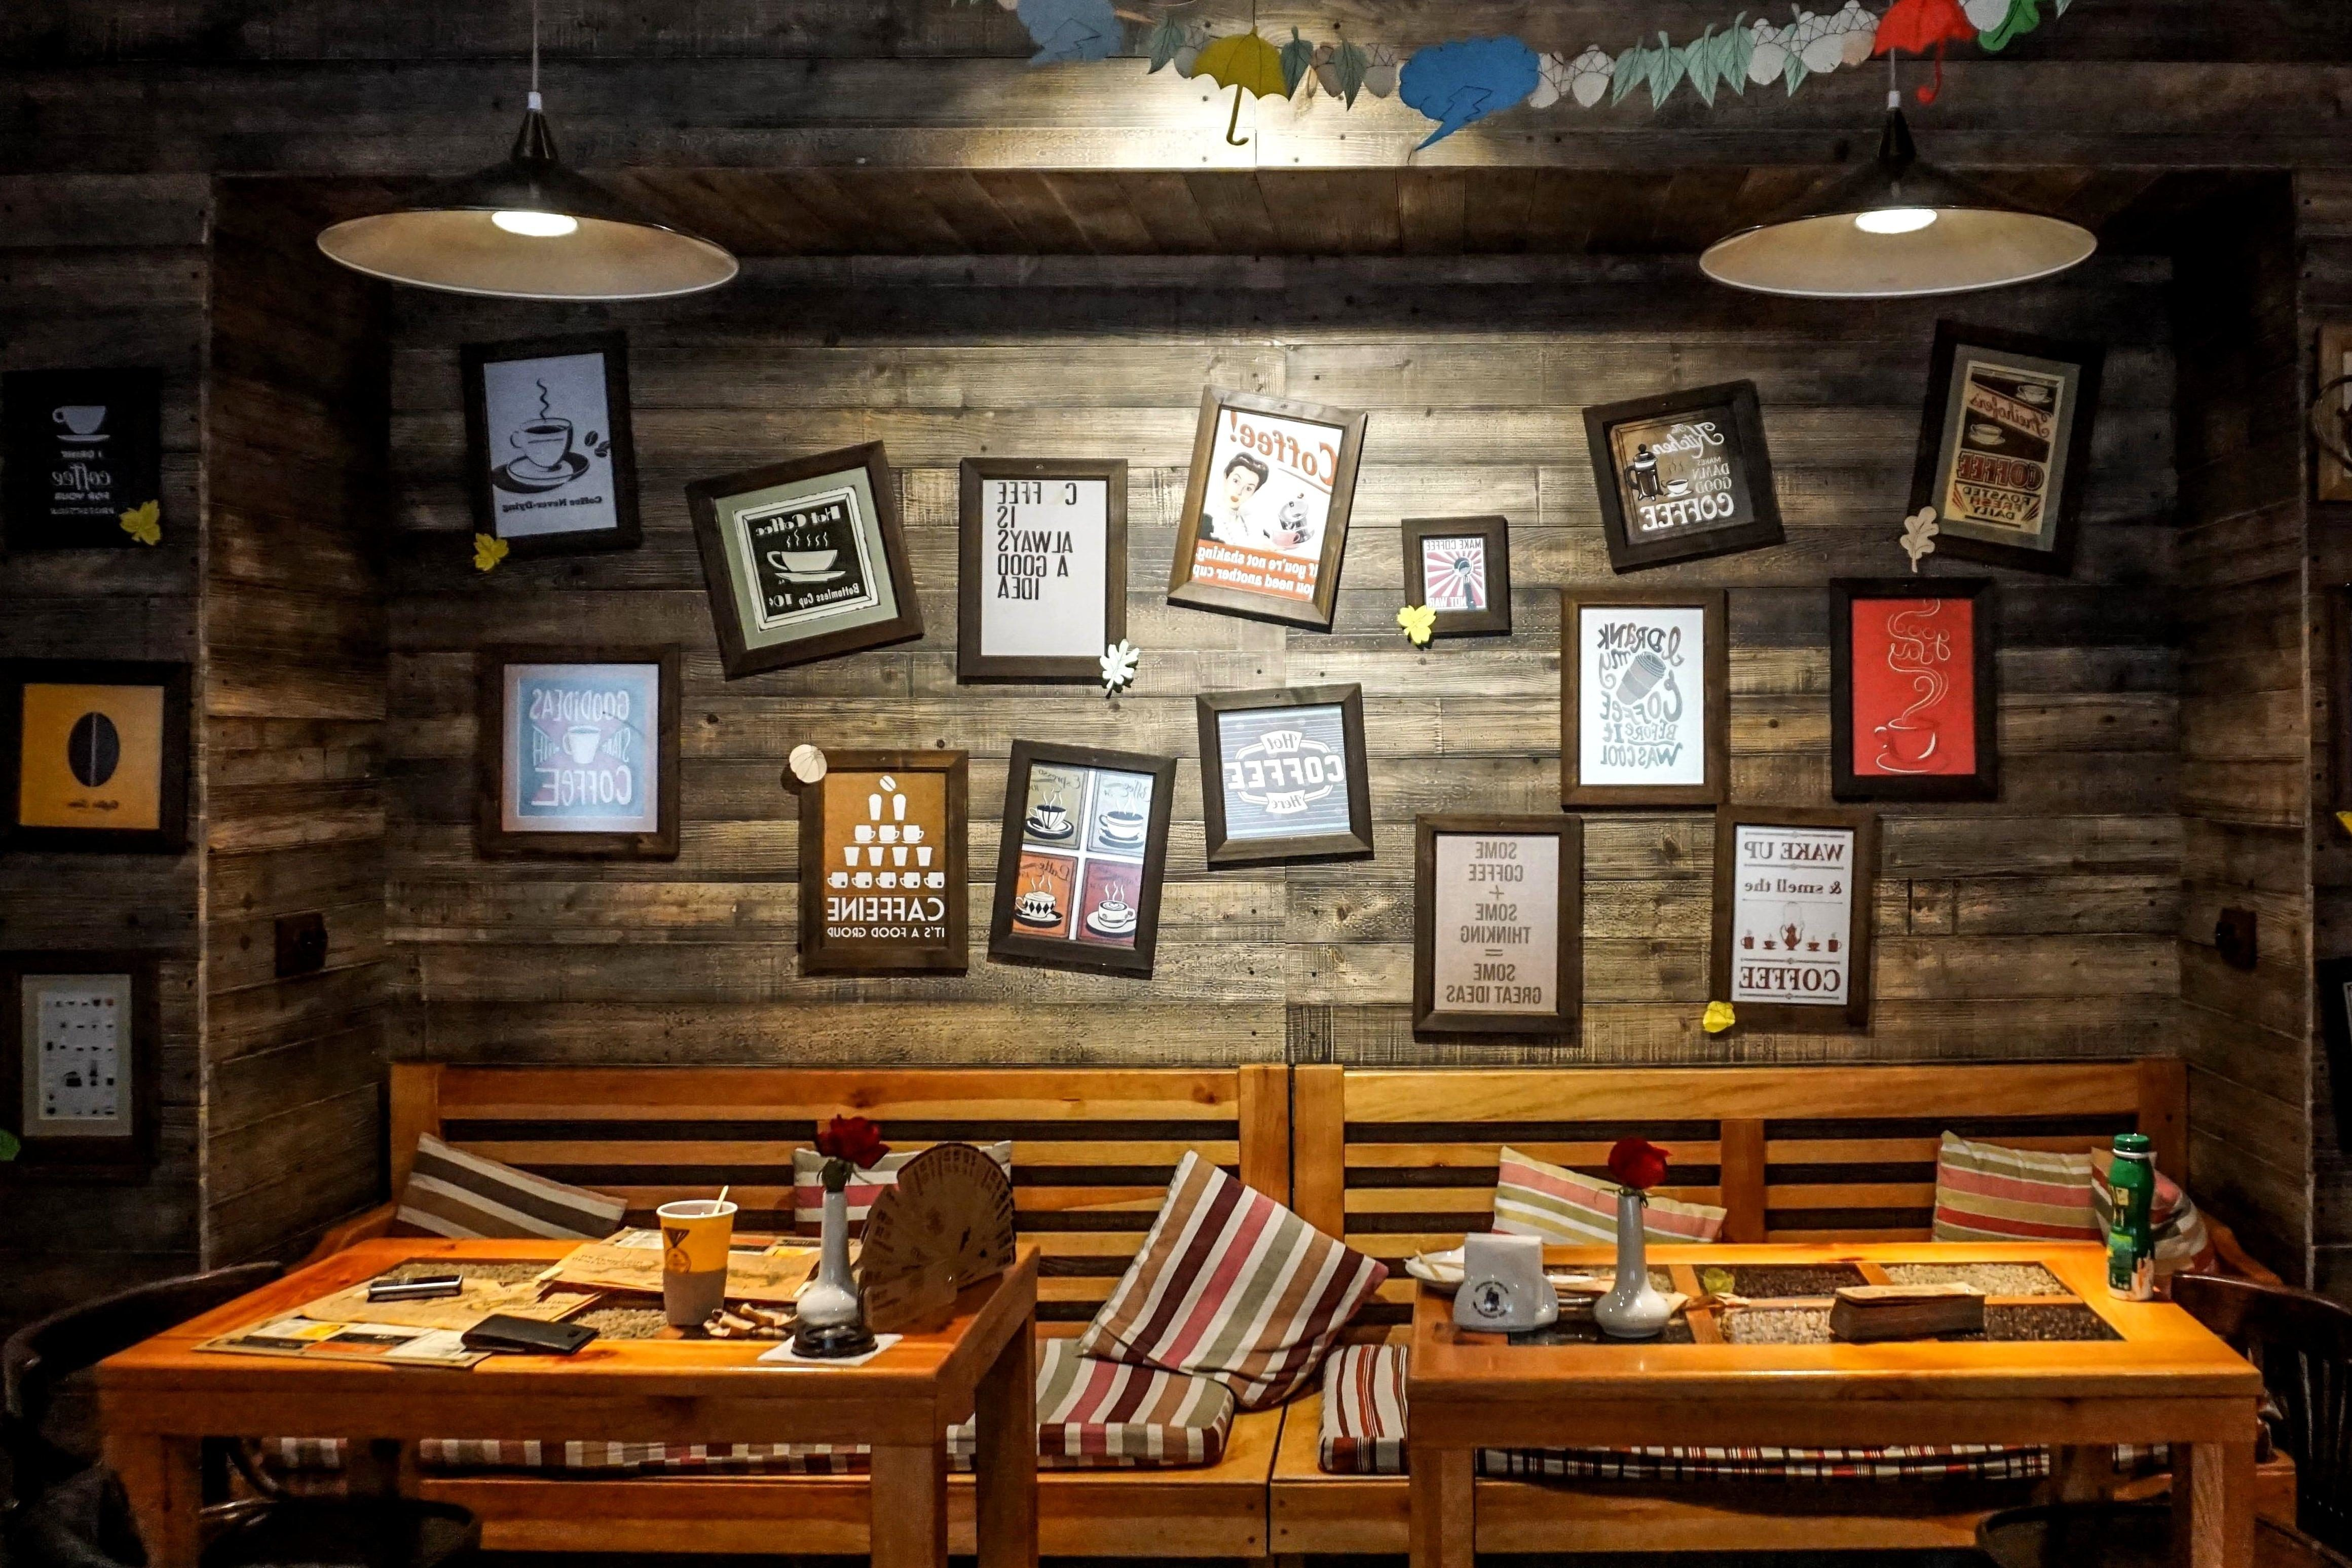 living room table decor kids chairs free picture: picture, wall, decoration, restaurant, interior